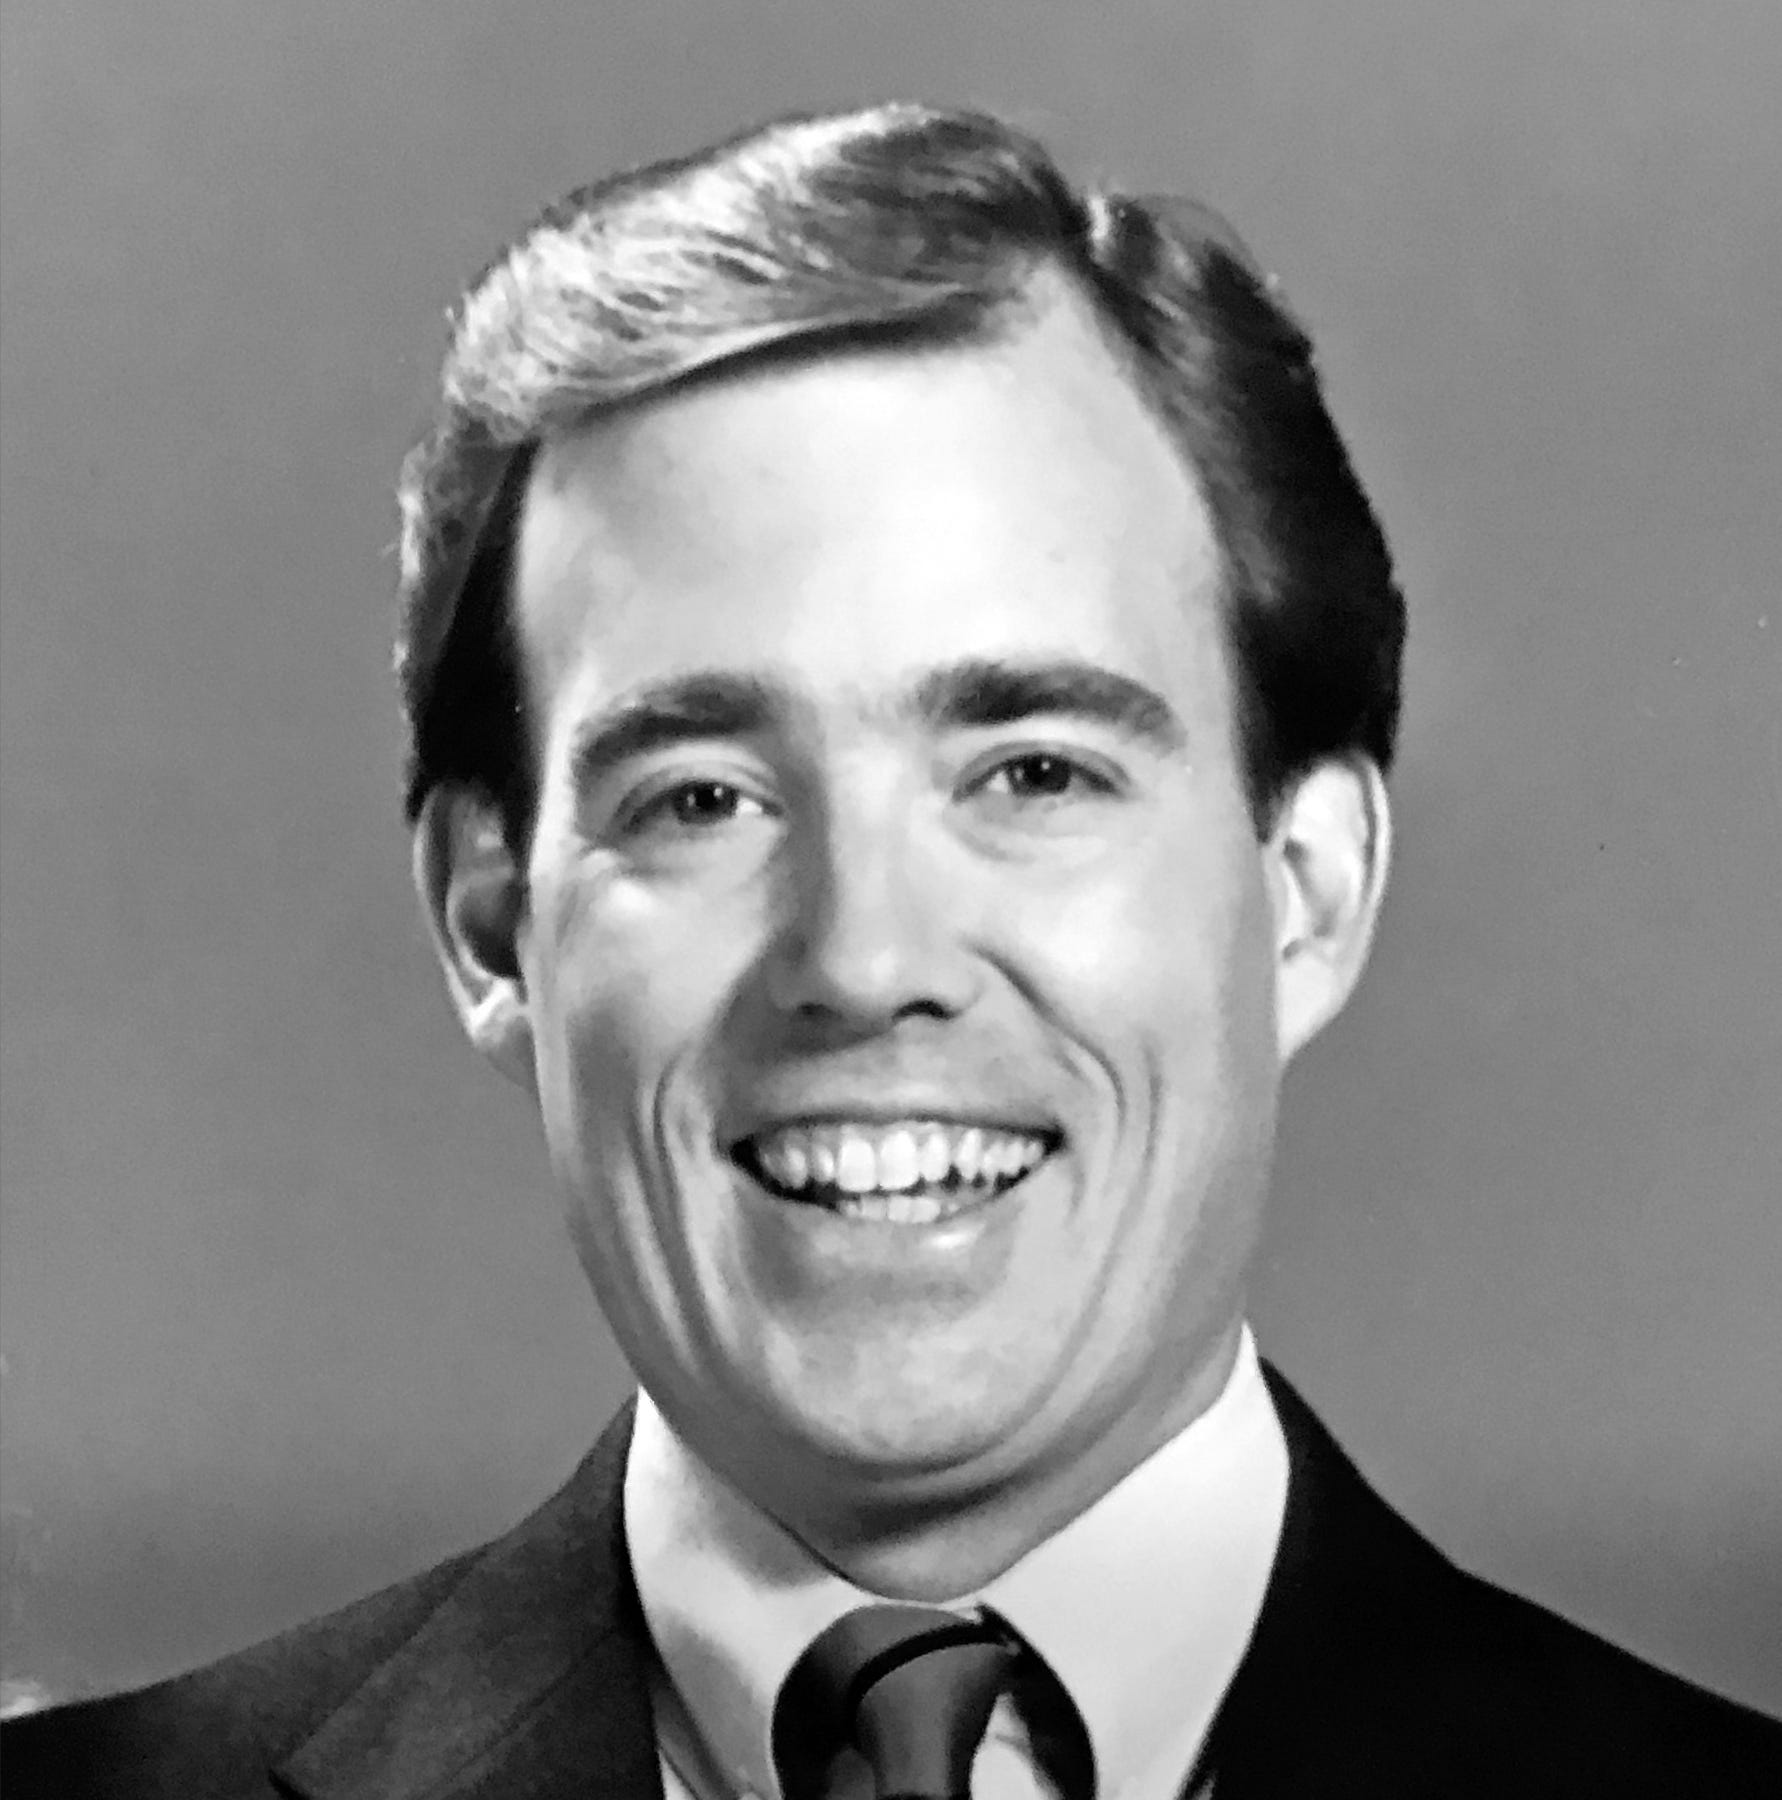 Former WTTV Channel 4 anchor Doug Rafferty dead at 66